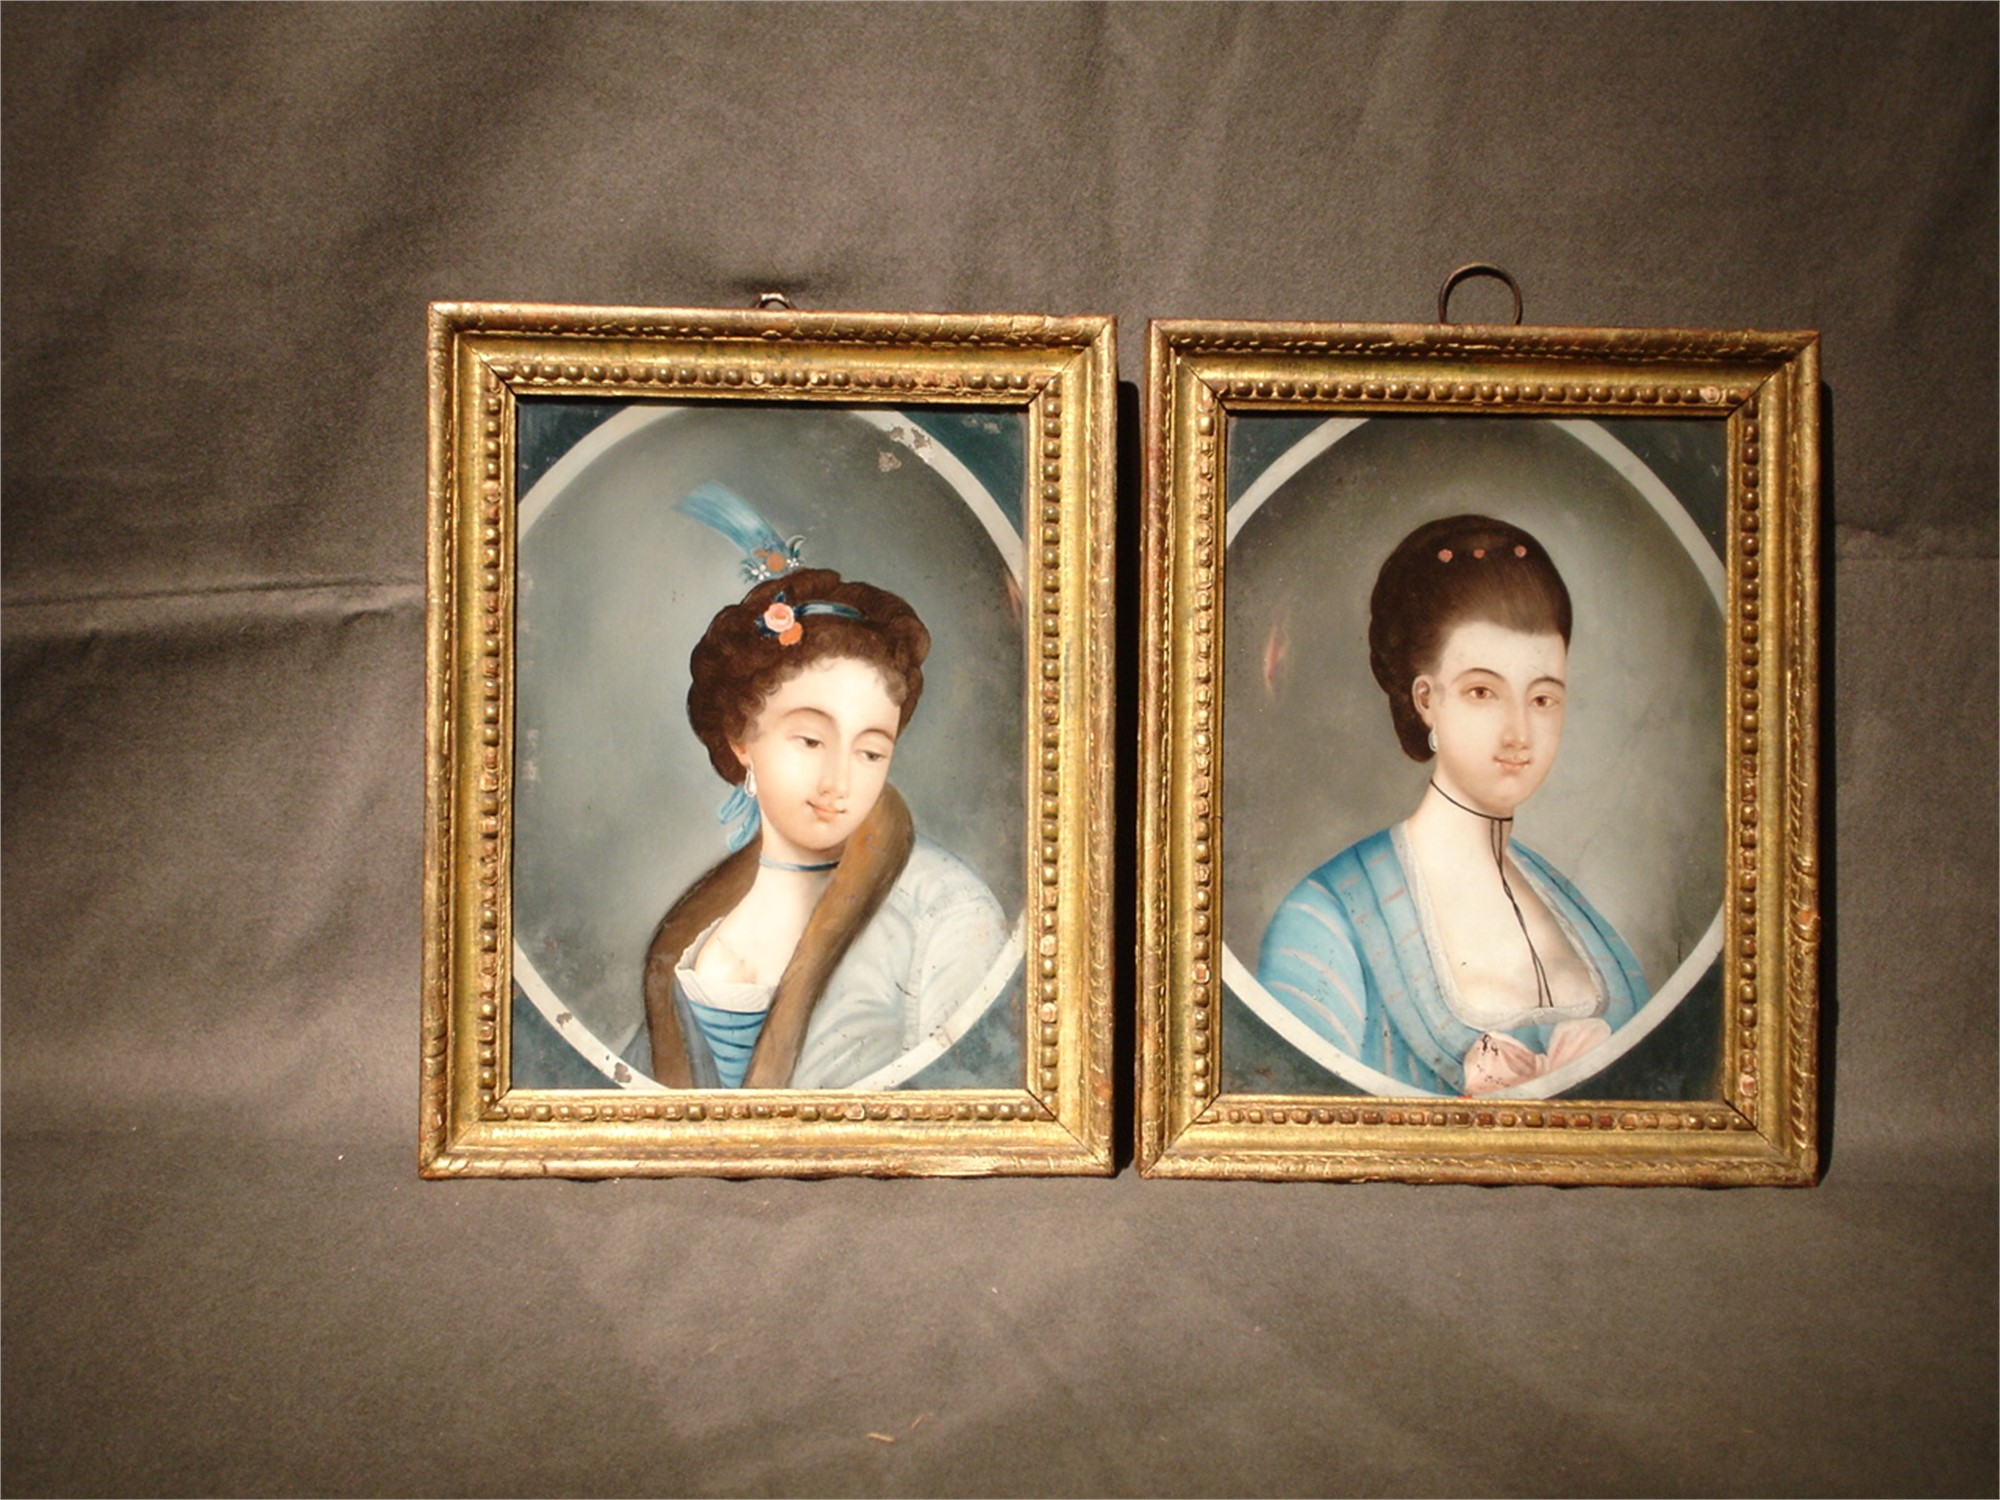 PAIR OF REVERSE PAINTINGS ON GLASS WITH EUROPEAN LADY IN A MEDALLION